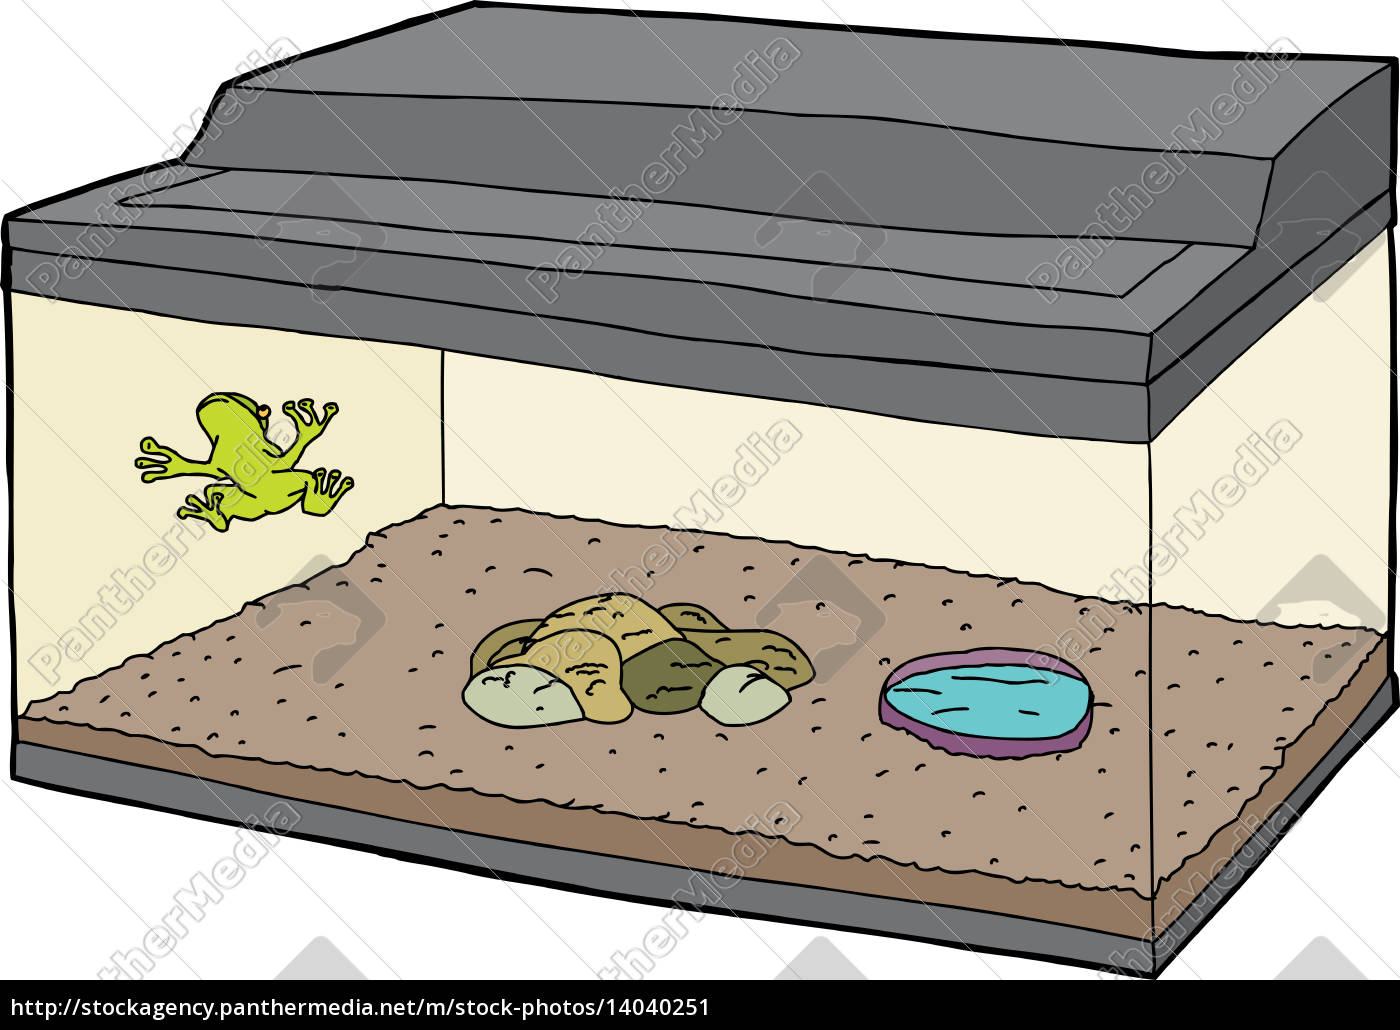 cartoon, of, frog, in, aquarium - 14040251